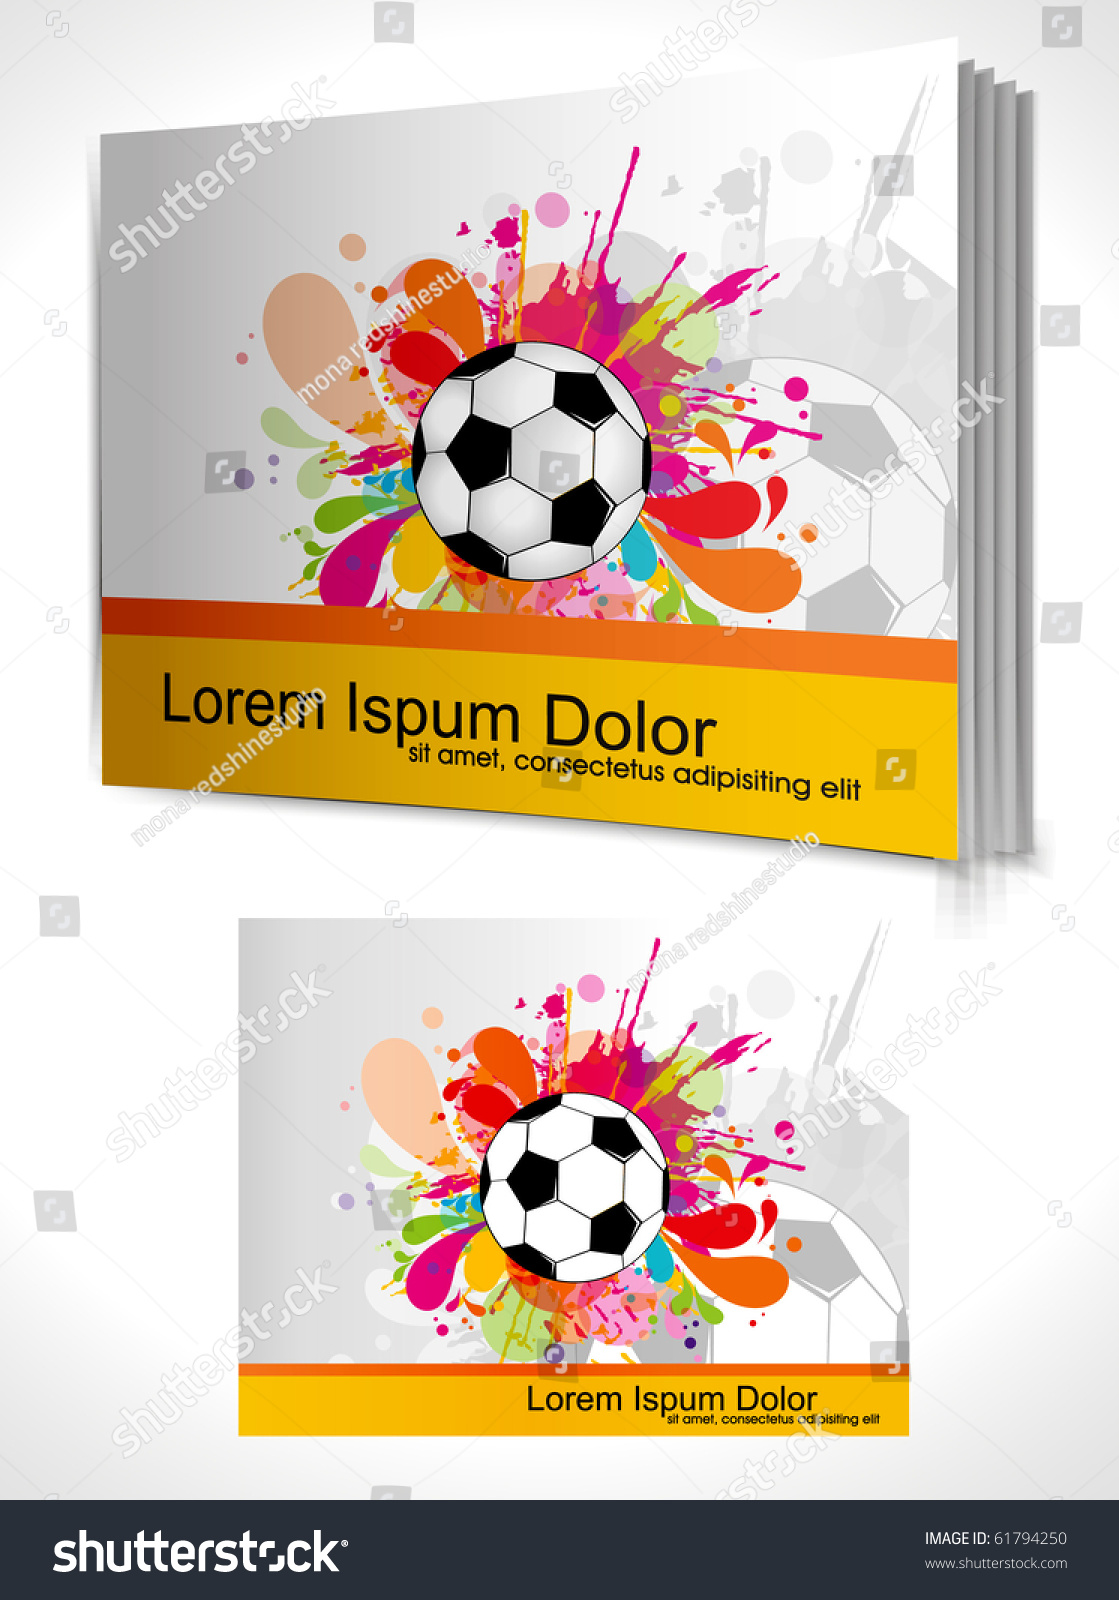 Book Cover Design Drawing : Book cover design template vector illustration